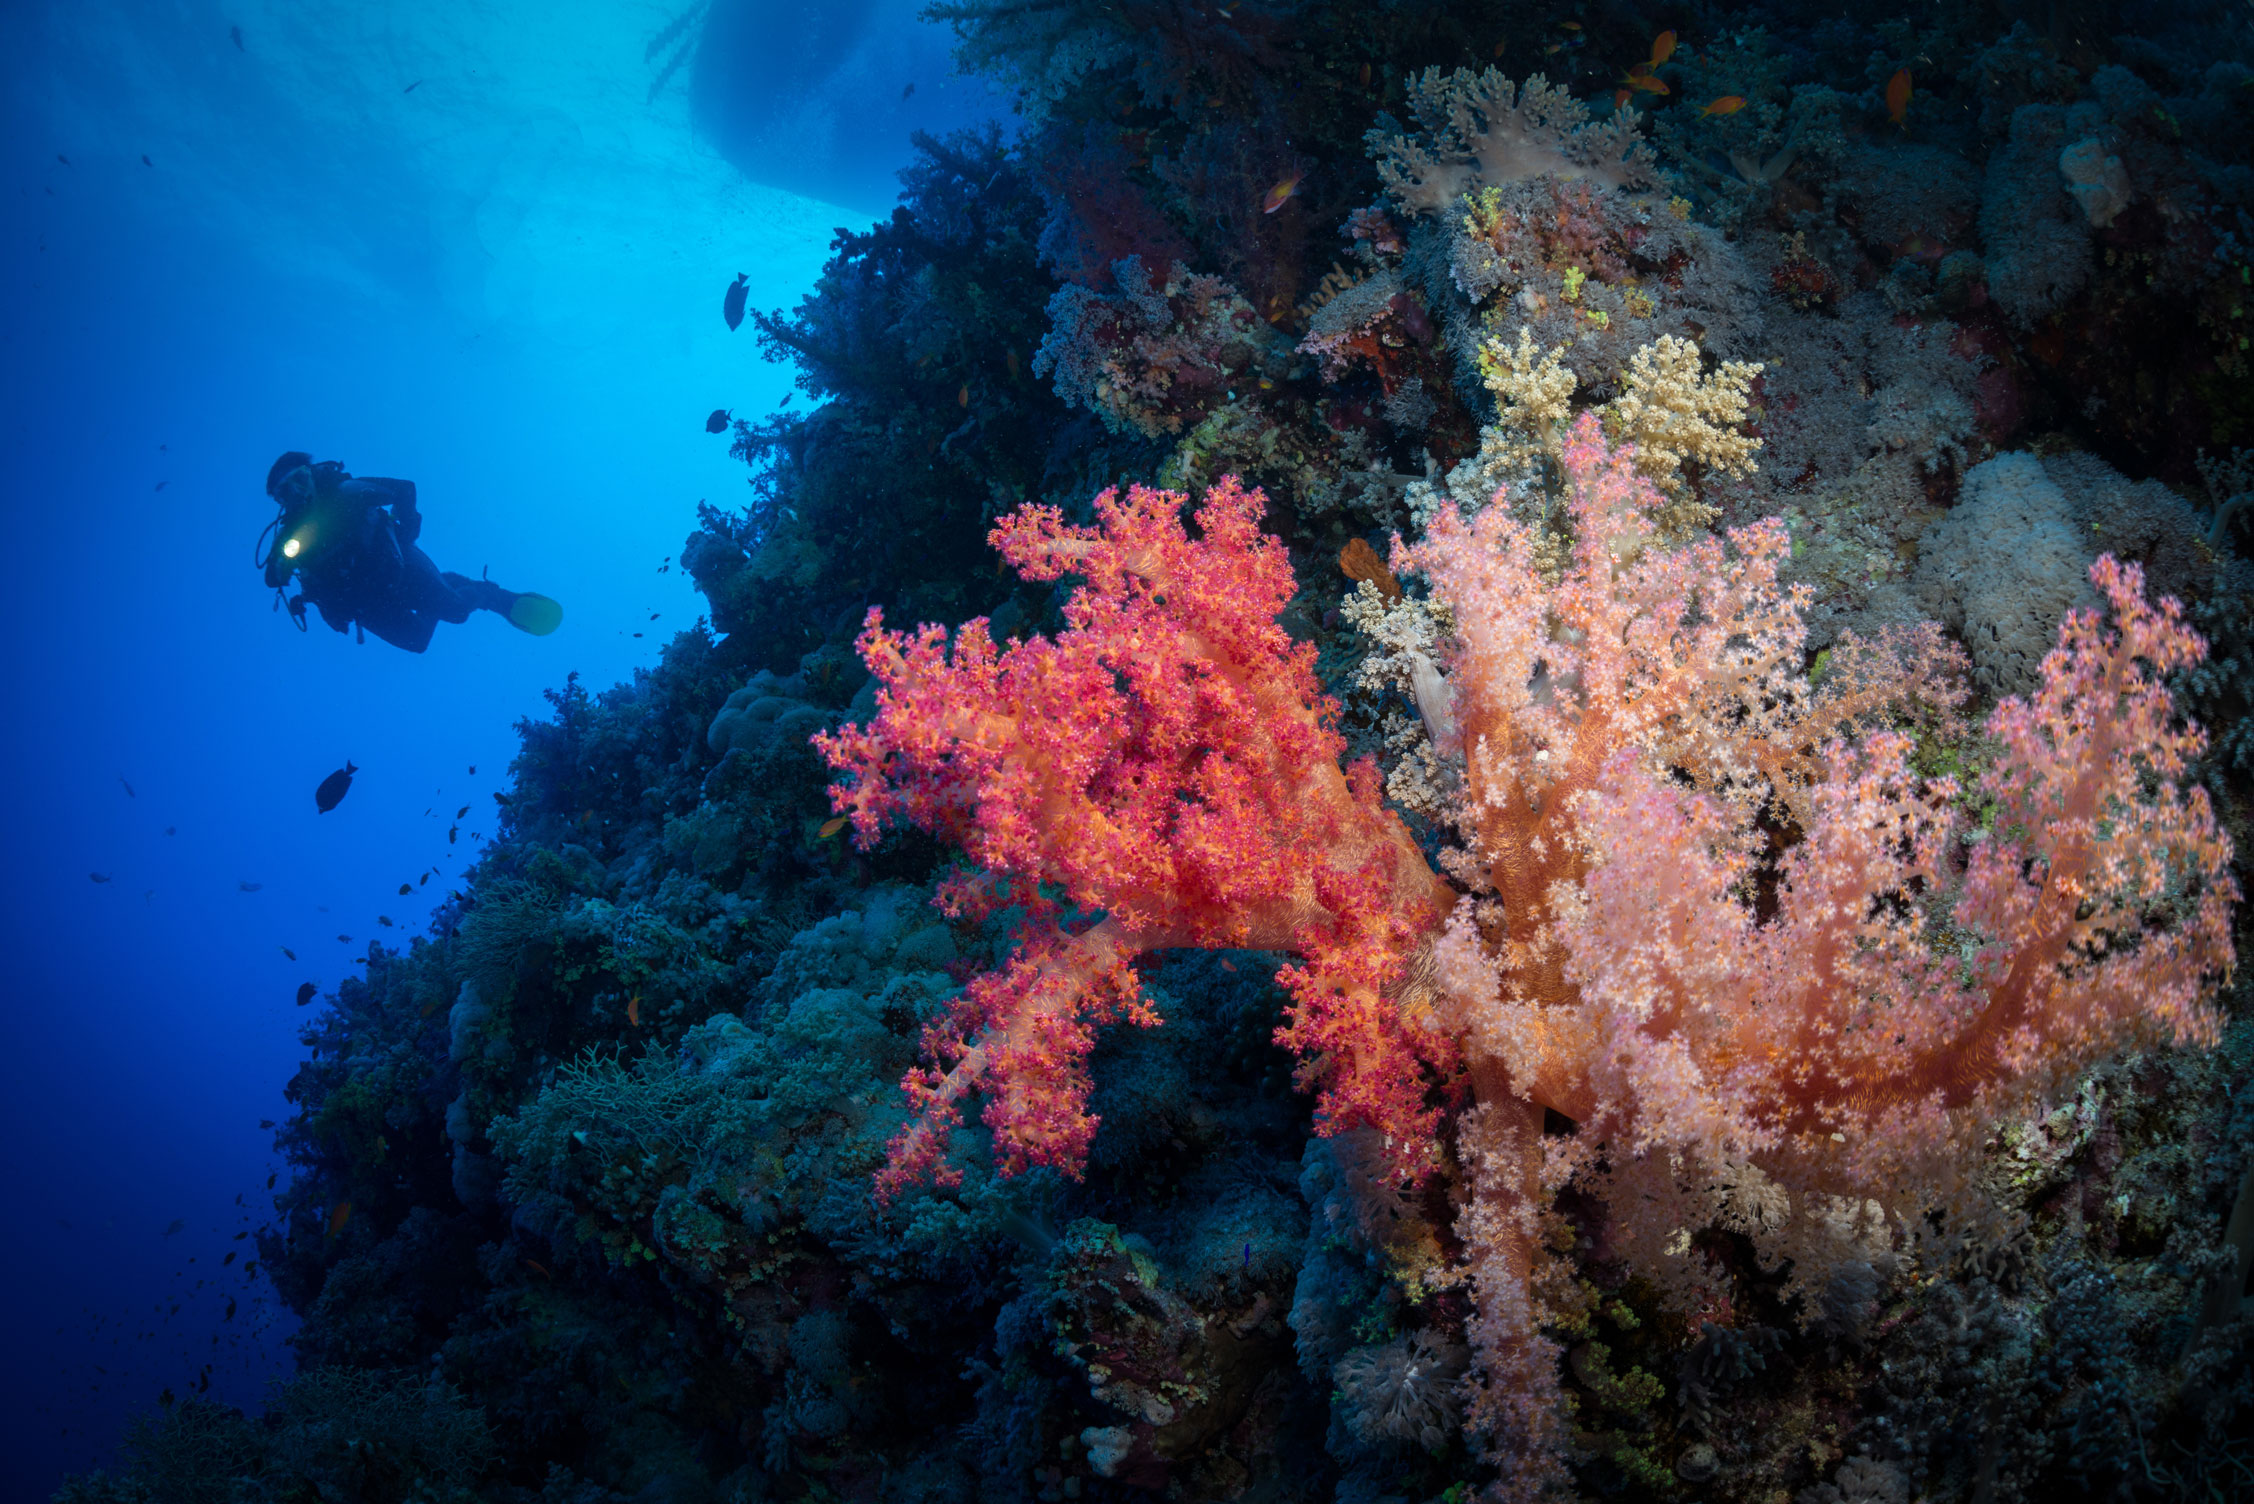 EGY_Red-Sea-UW-St-John's-Reef-©-AdobeStock_125971544.jpg